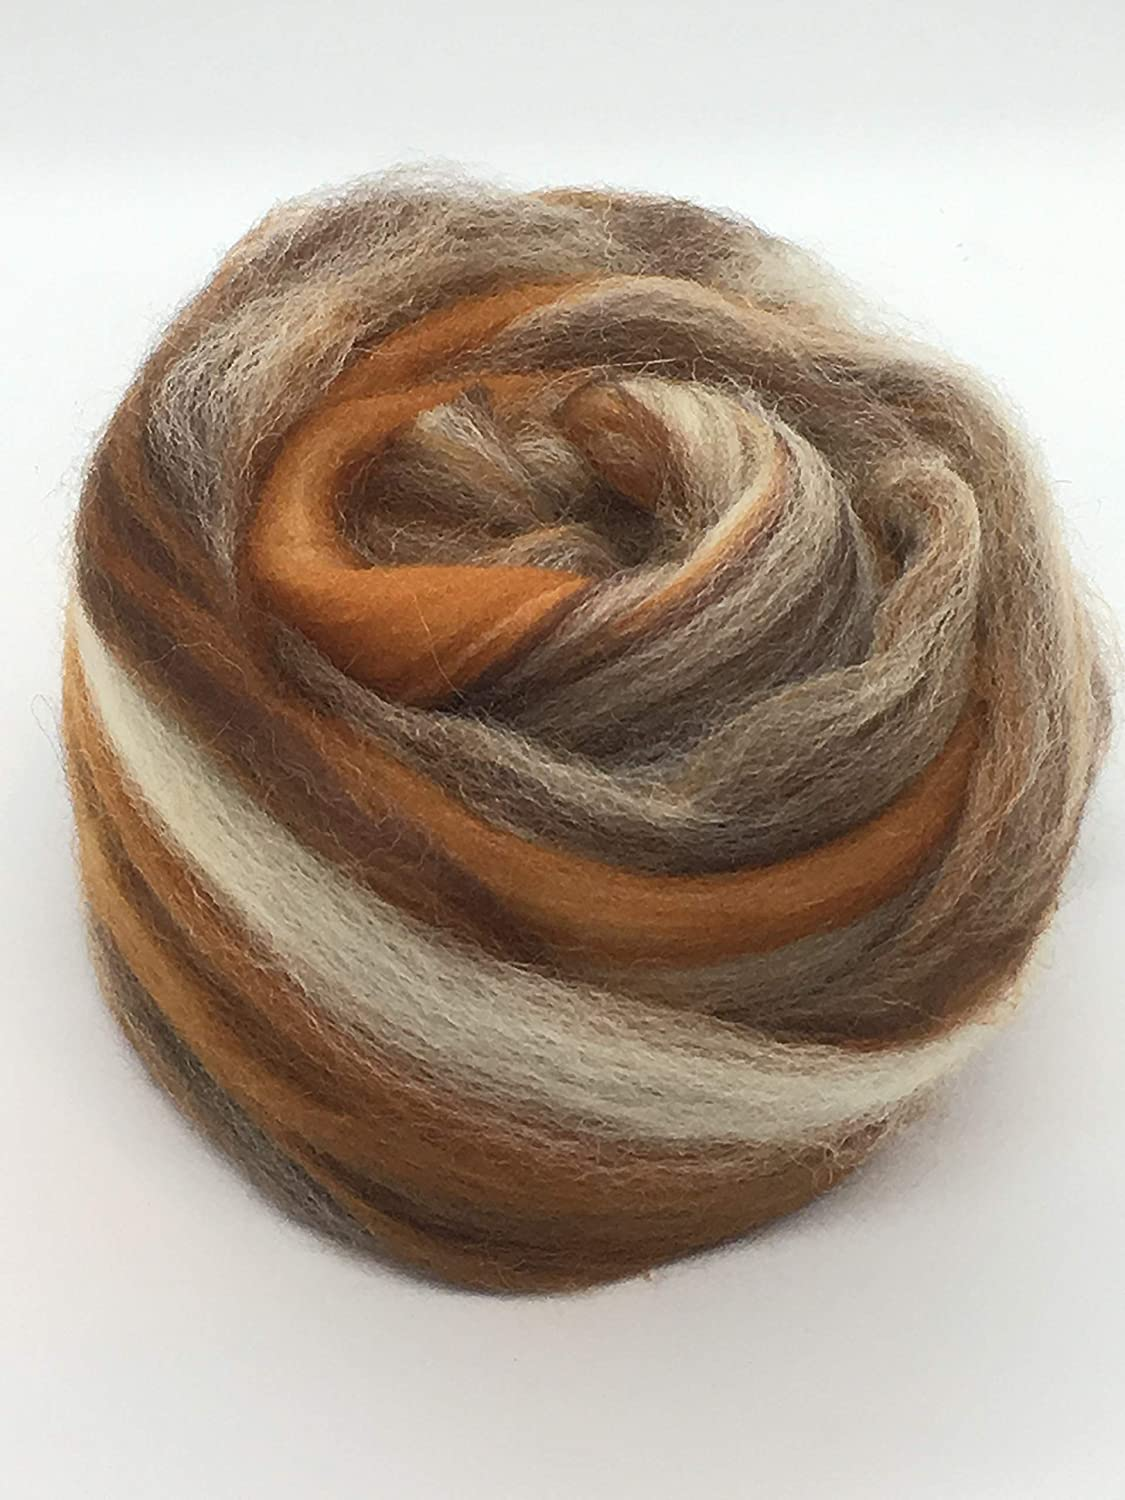 Shep de Cafe Latte lana (Merino, cable de Spinning, fieltro ...